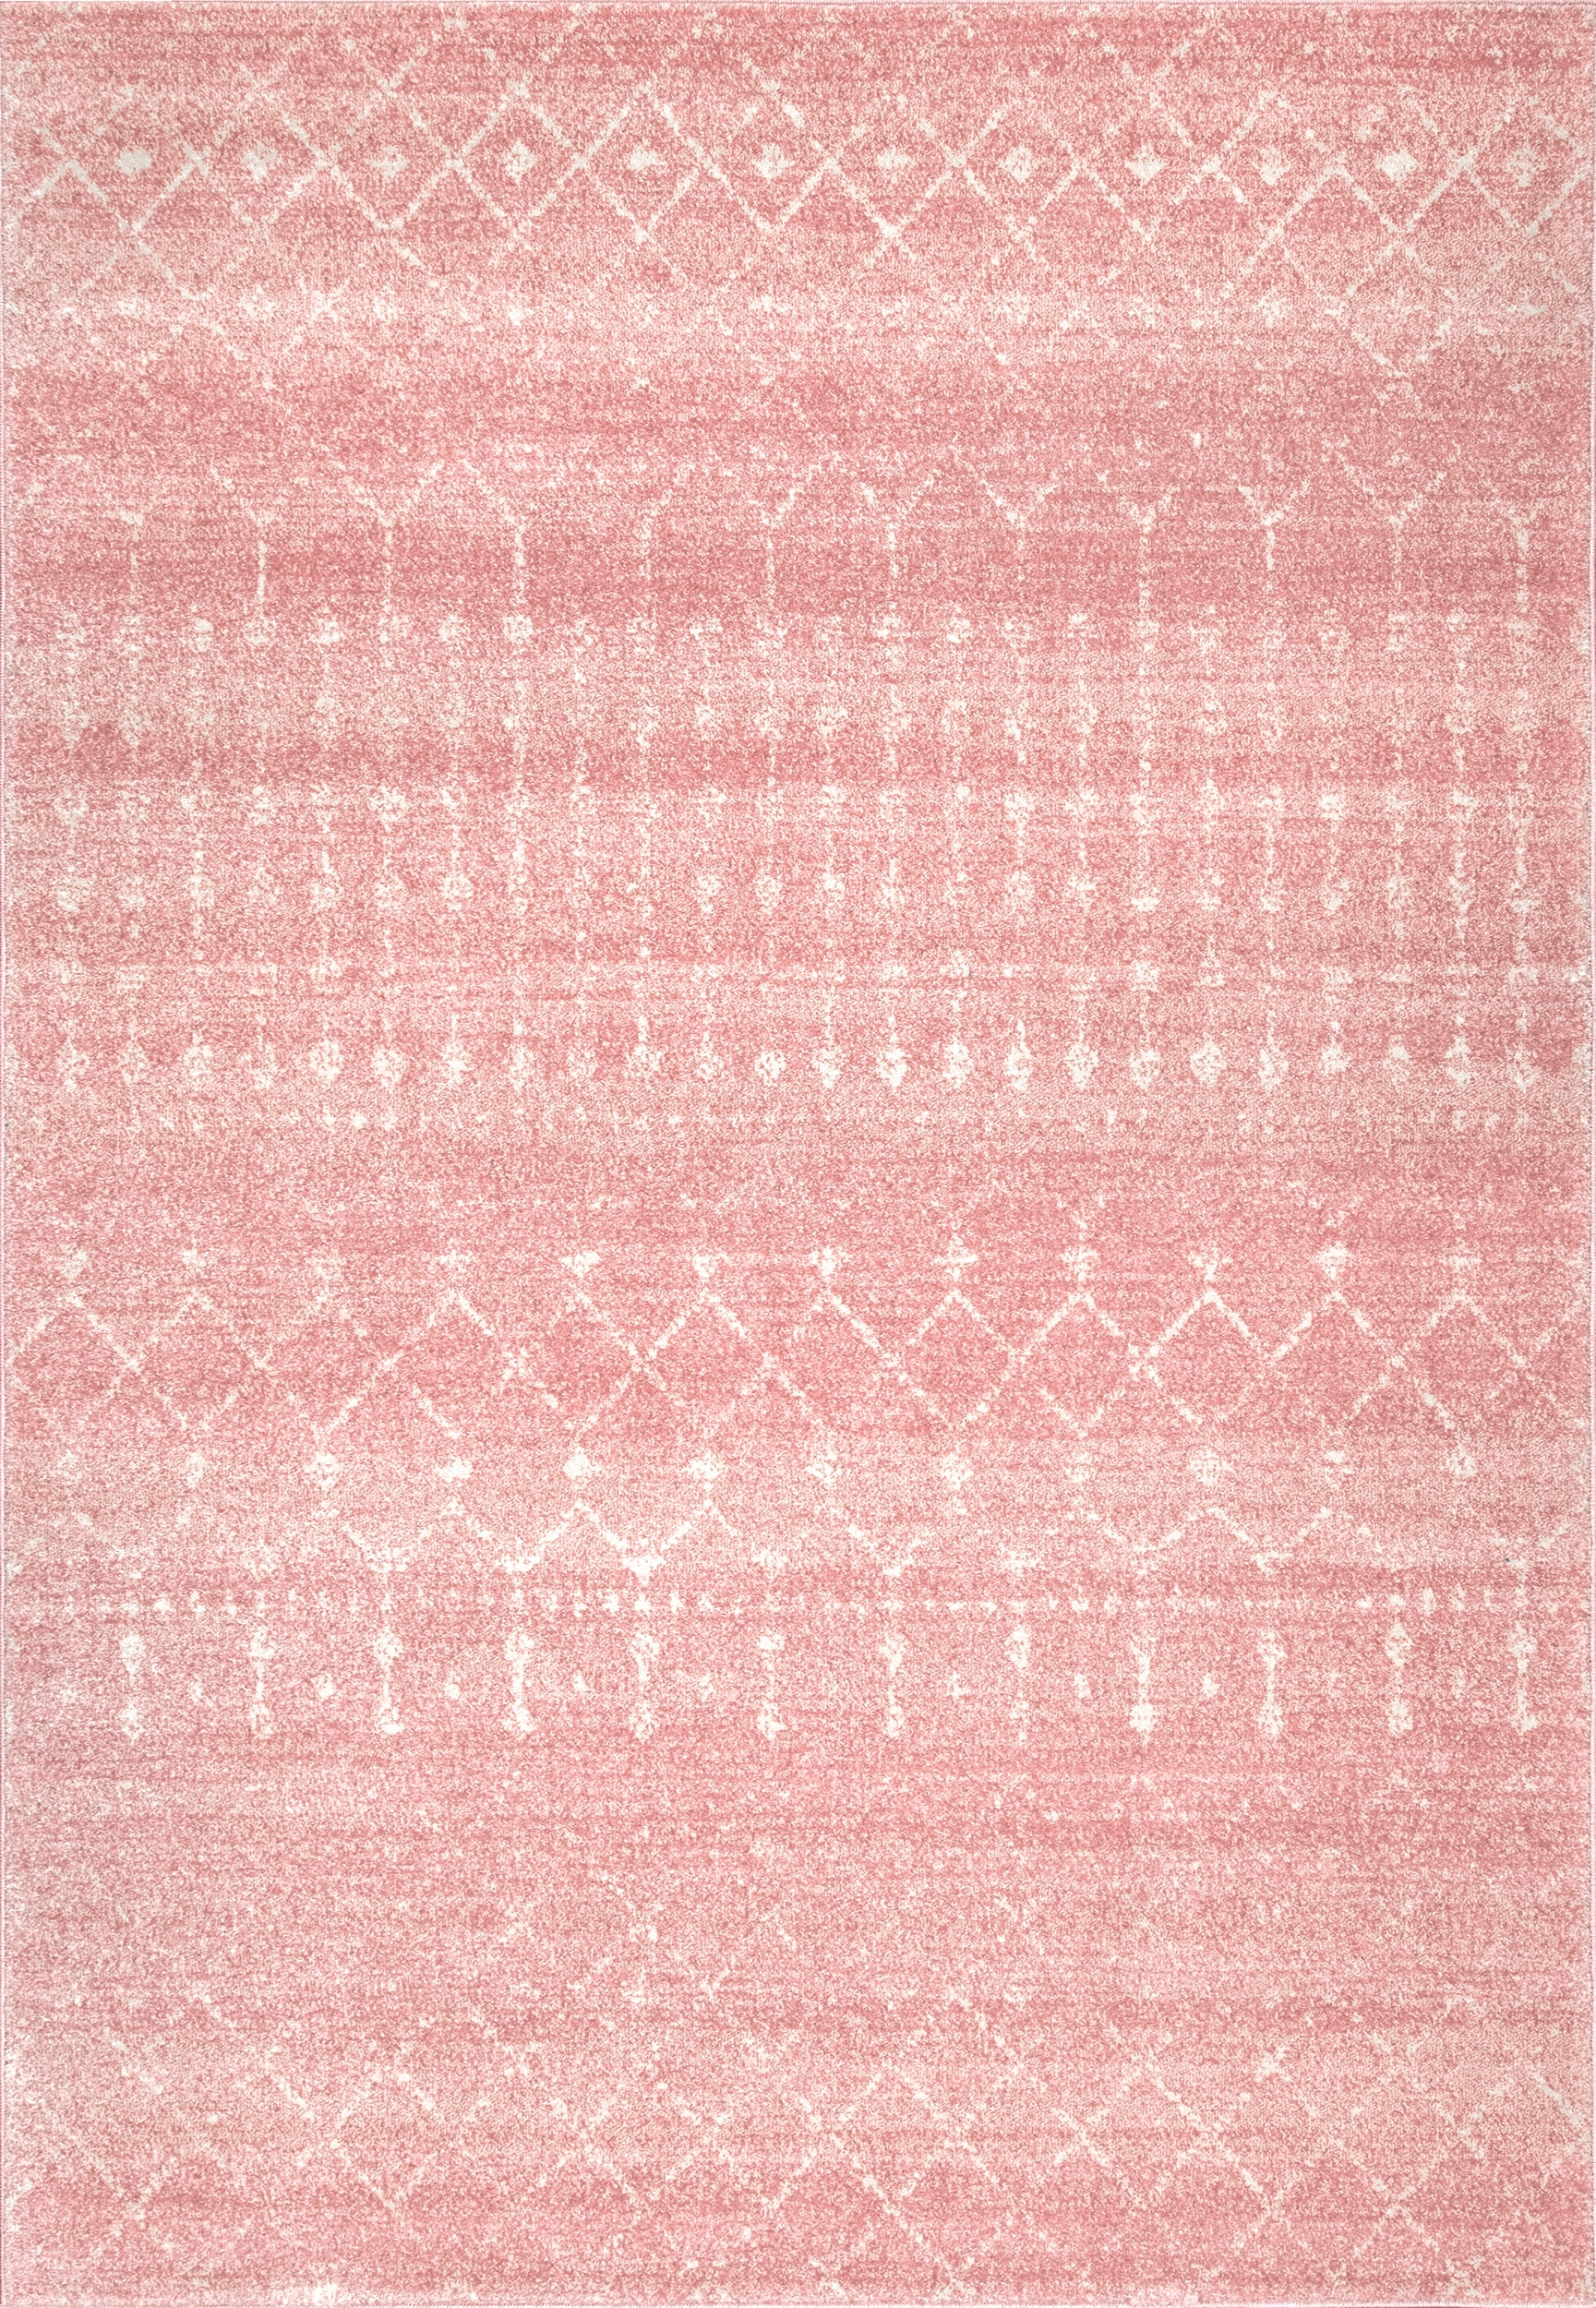 Pink Rugs | Pink Area Rugs | Modern Rugs from Rugs USA